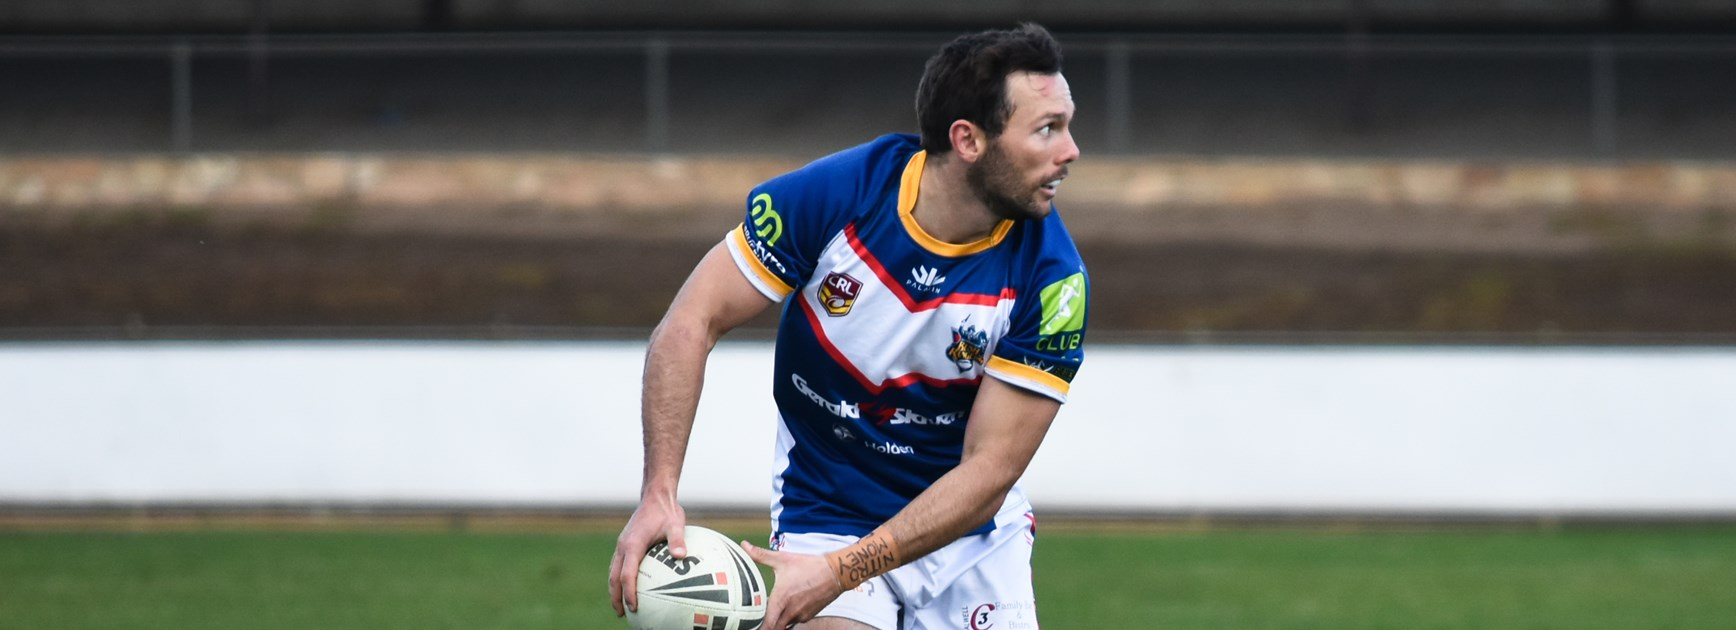 Austbrokers Canberra Raiders Cup Round 14 Wrap